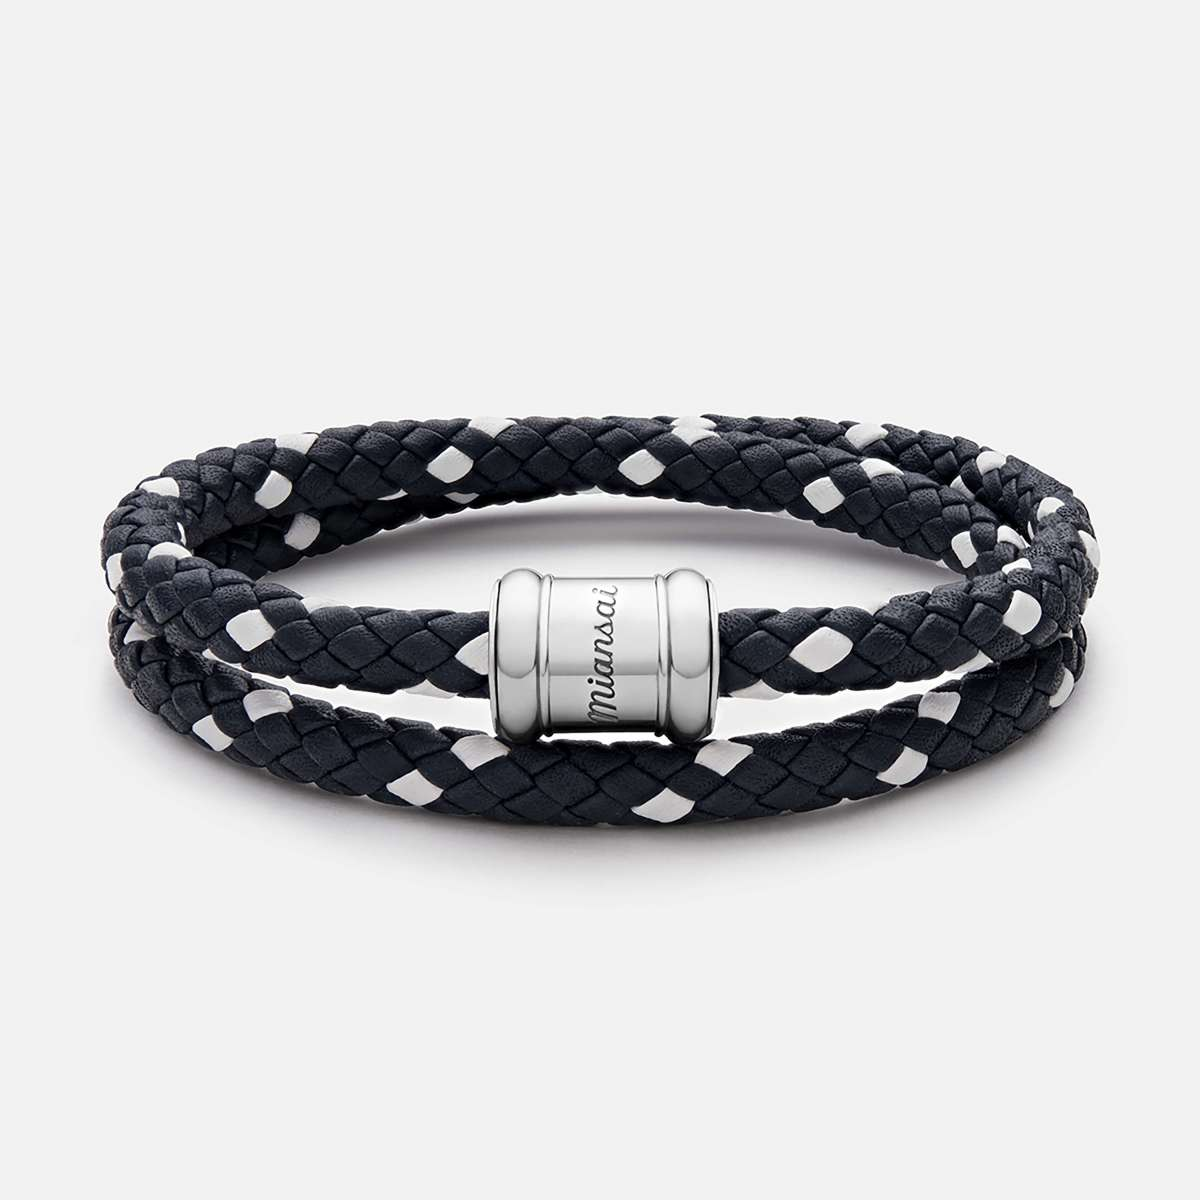 mens bracelets two-tone leather casing bracelet, silver ehhrgdn